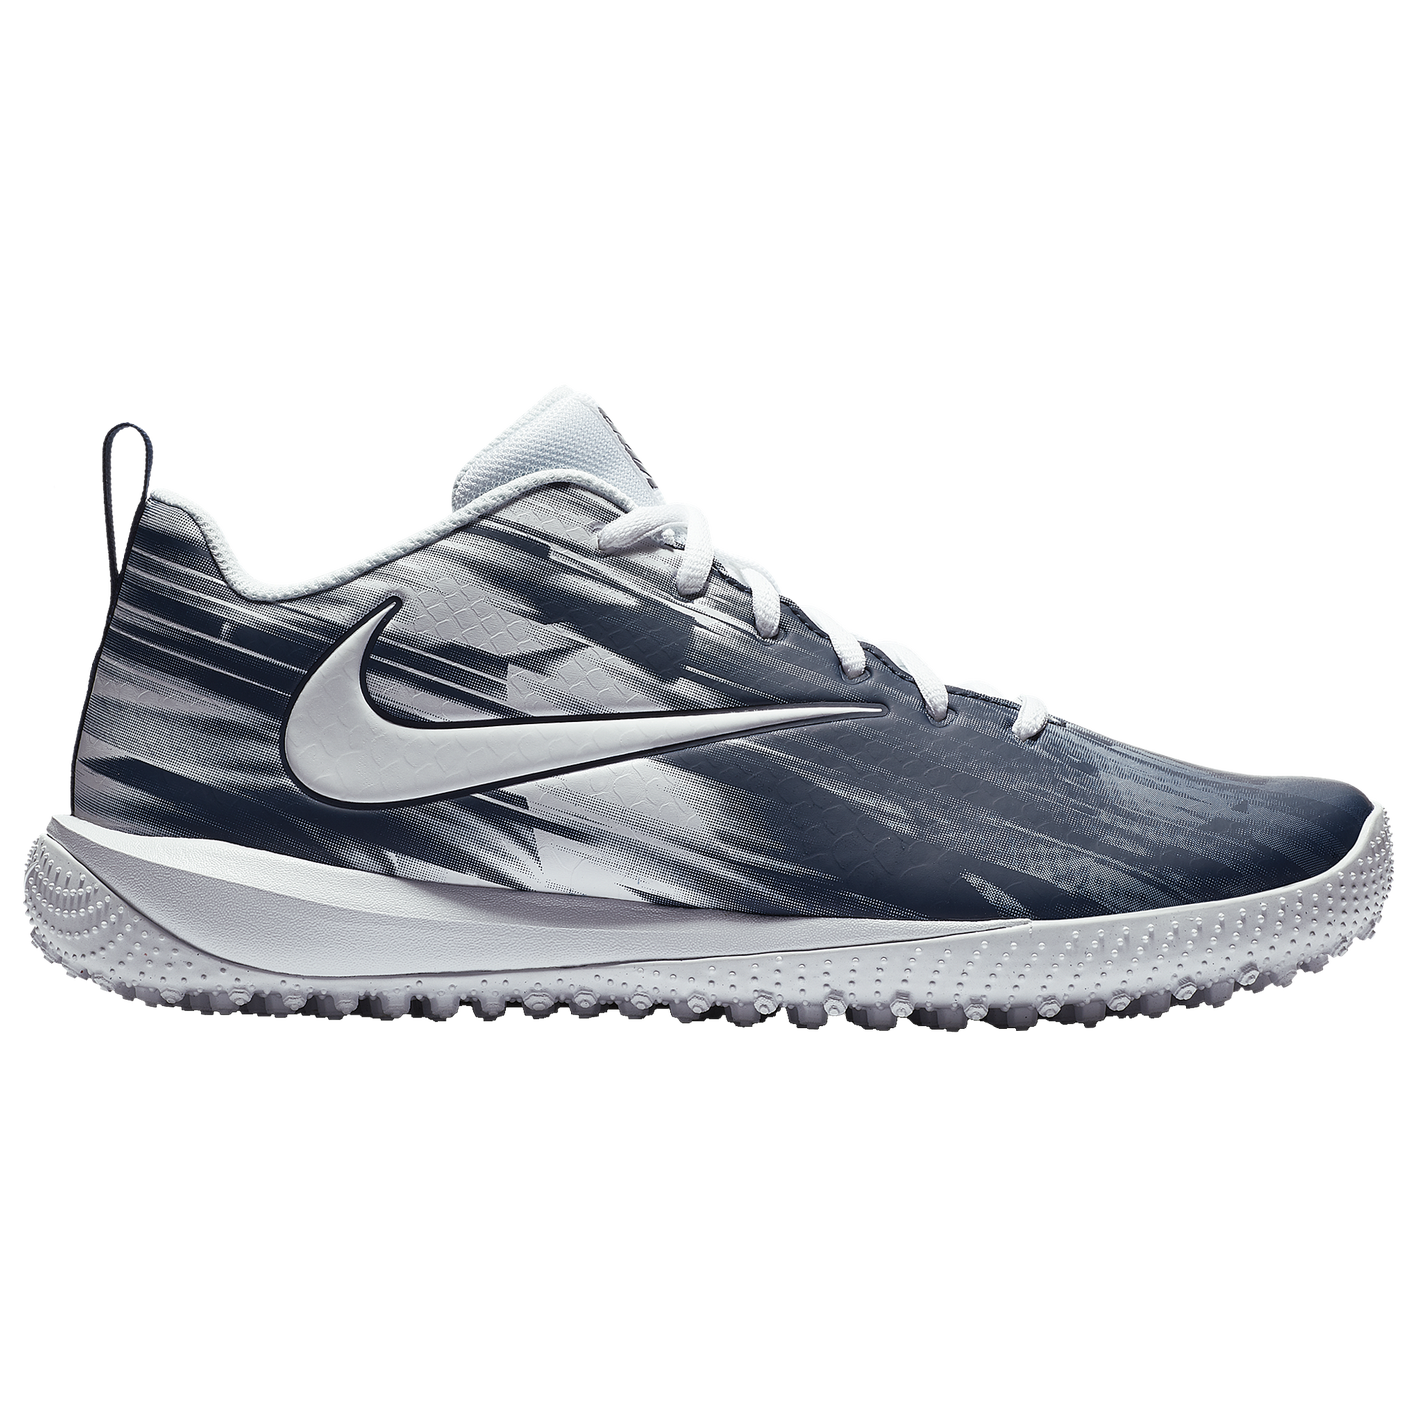 aaef7797d26 Nike Vapor Varsity Low Turf LAX - Men s - Lacrosse - Shoes - White ...